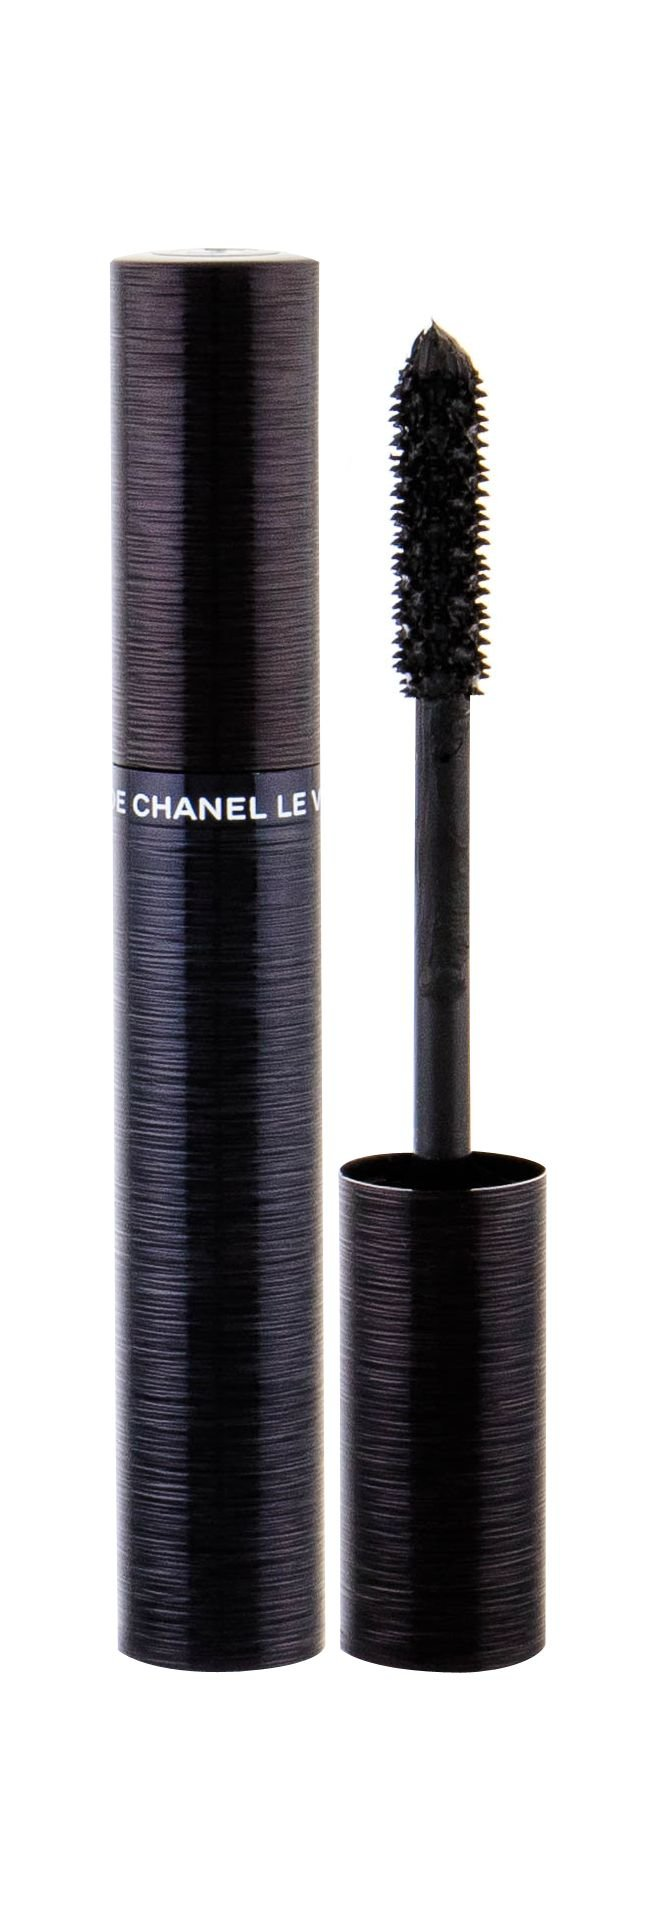 Chanel Le Volume Révolution De Chanel Mascara 6ml 10 Black